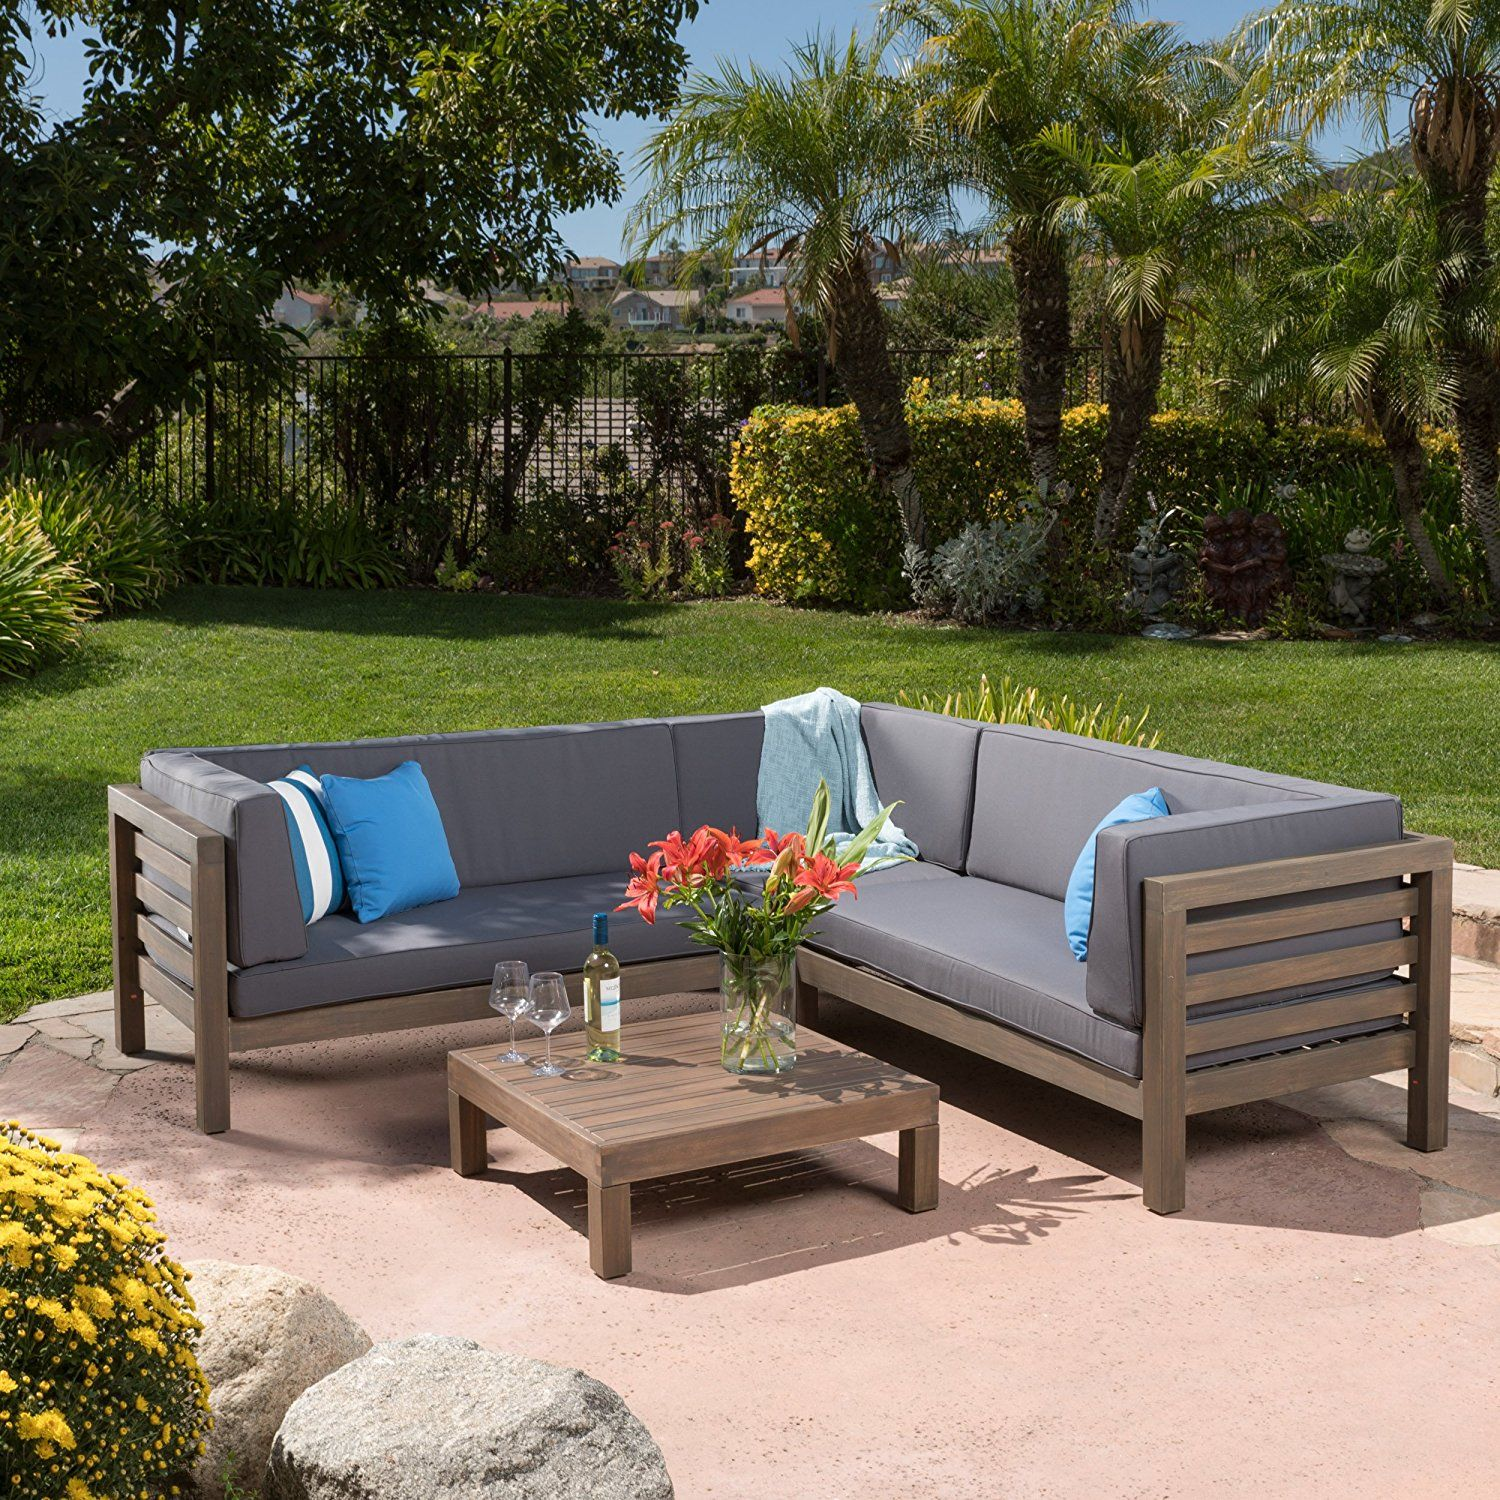 set patio elegant furniture of com w chat parma outdoor luxury wood piece amazon